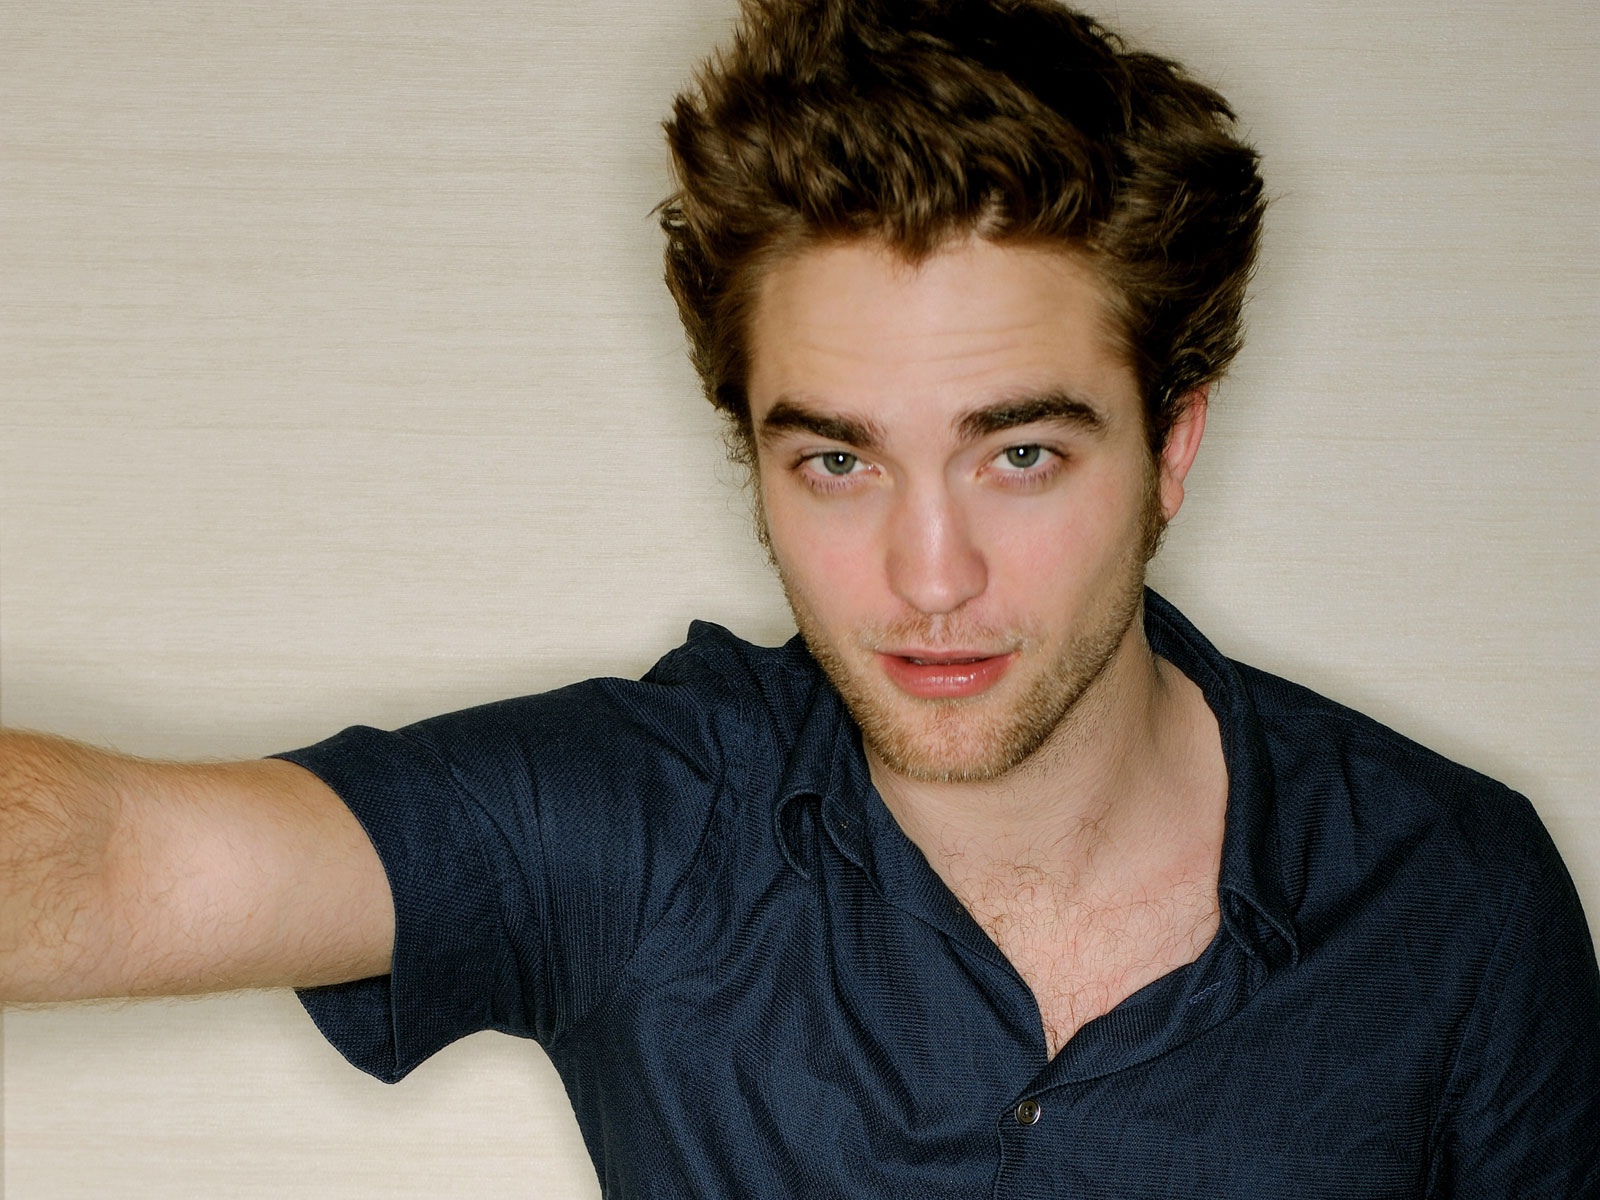 Robert Pattinson Pictu... Robert Pattinson